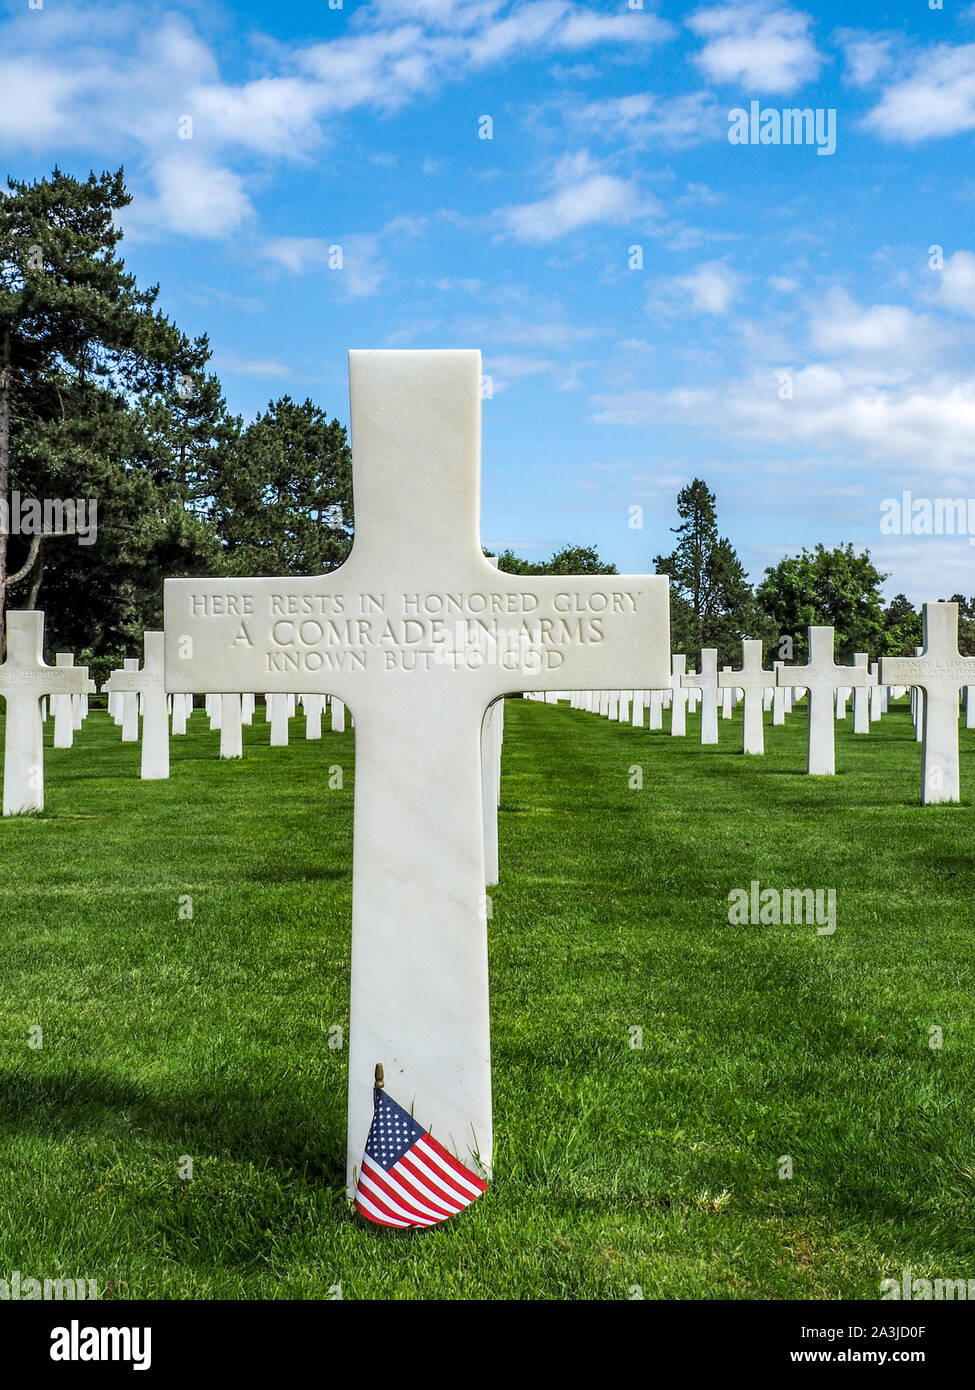 Grave of unknown soldier at Normandy American Cemetery on 75th Anniversary of Normandy Invasion. Stock Photo